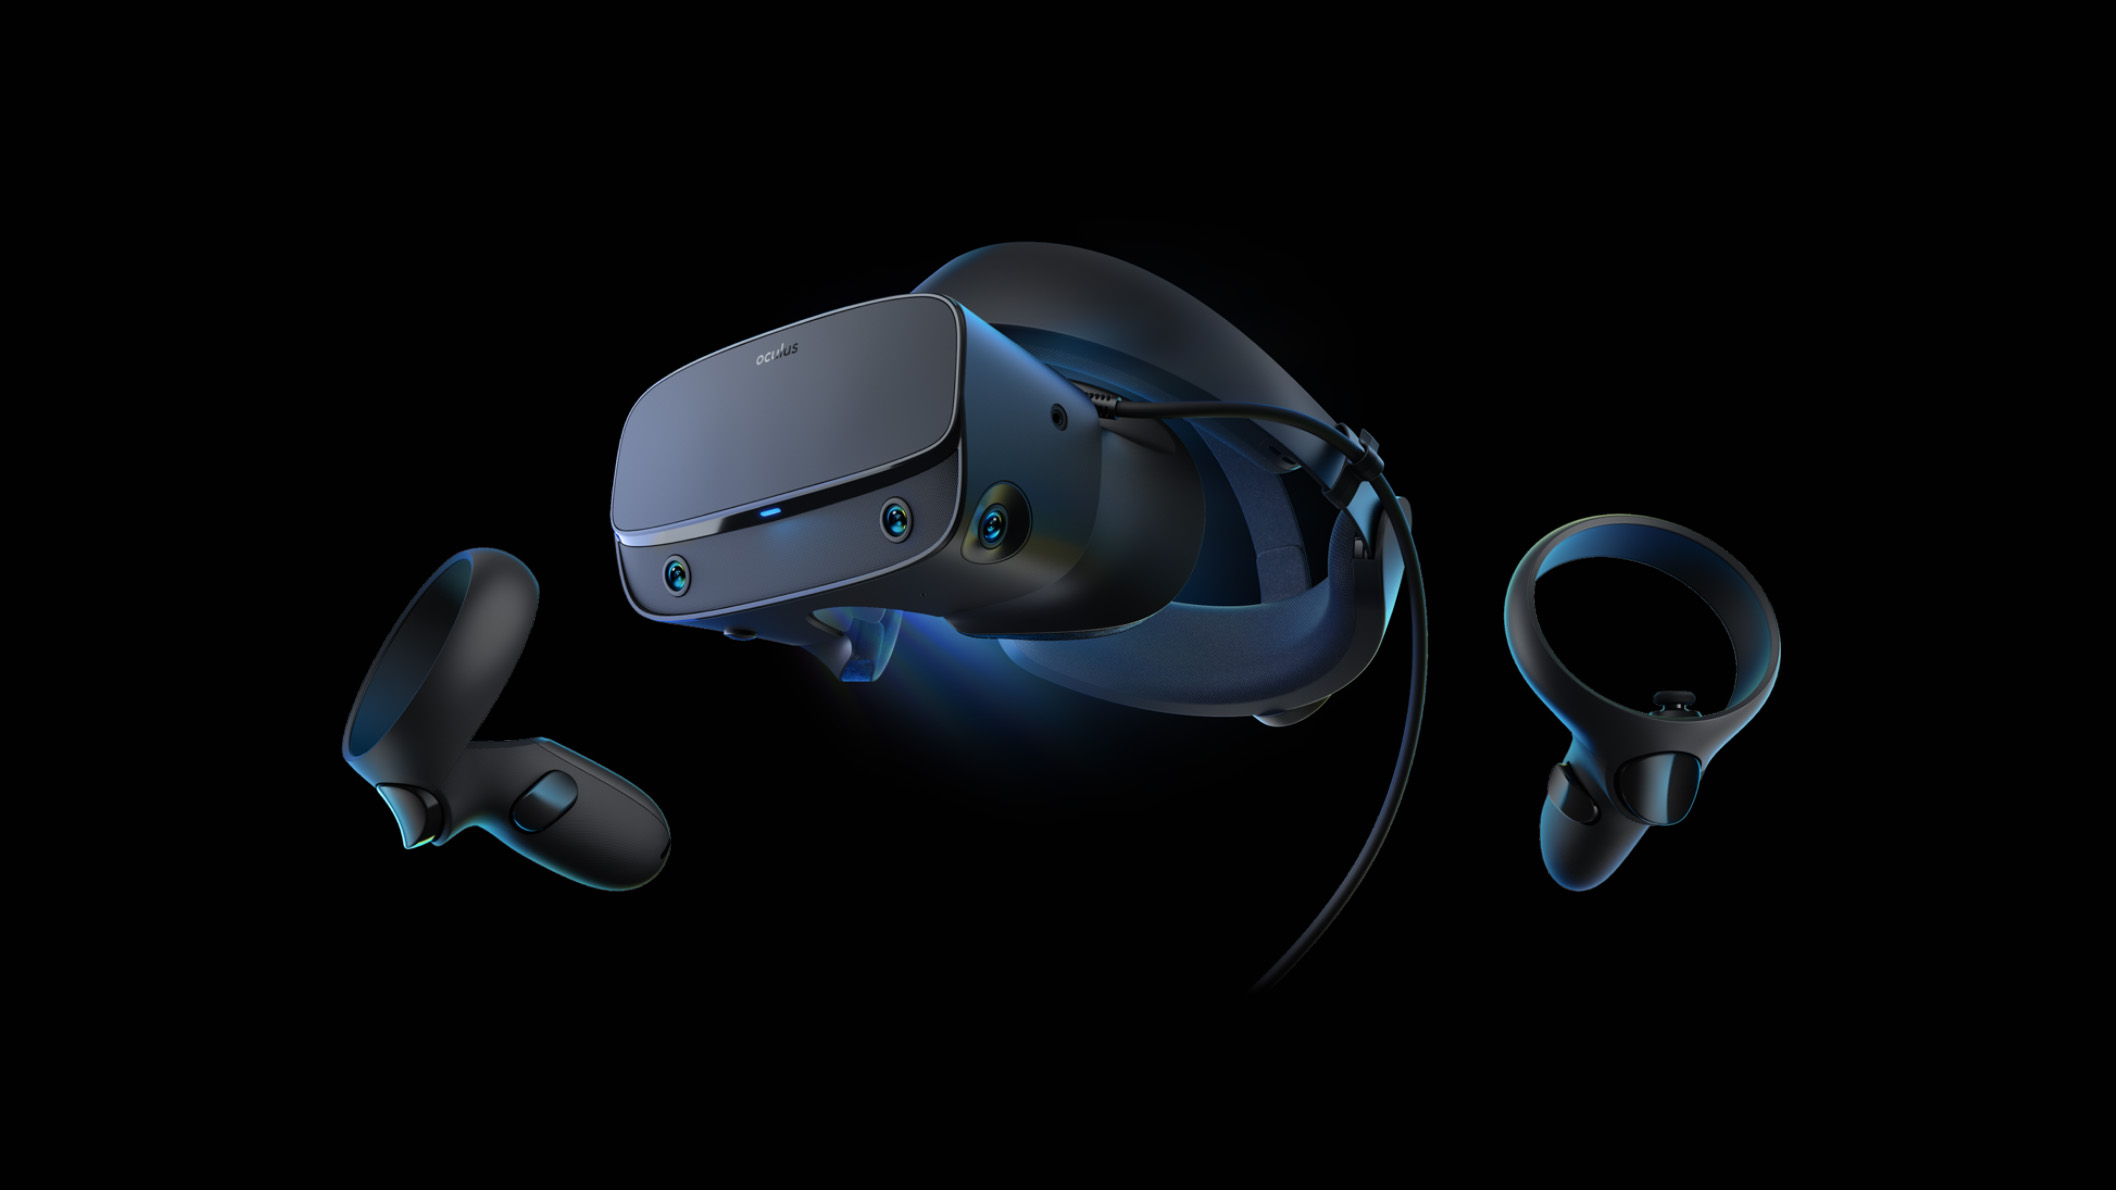 Side view image of Oculus Rift S Virtual Reality System, featuring the controllers and headset.